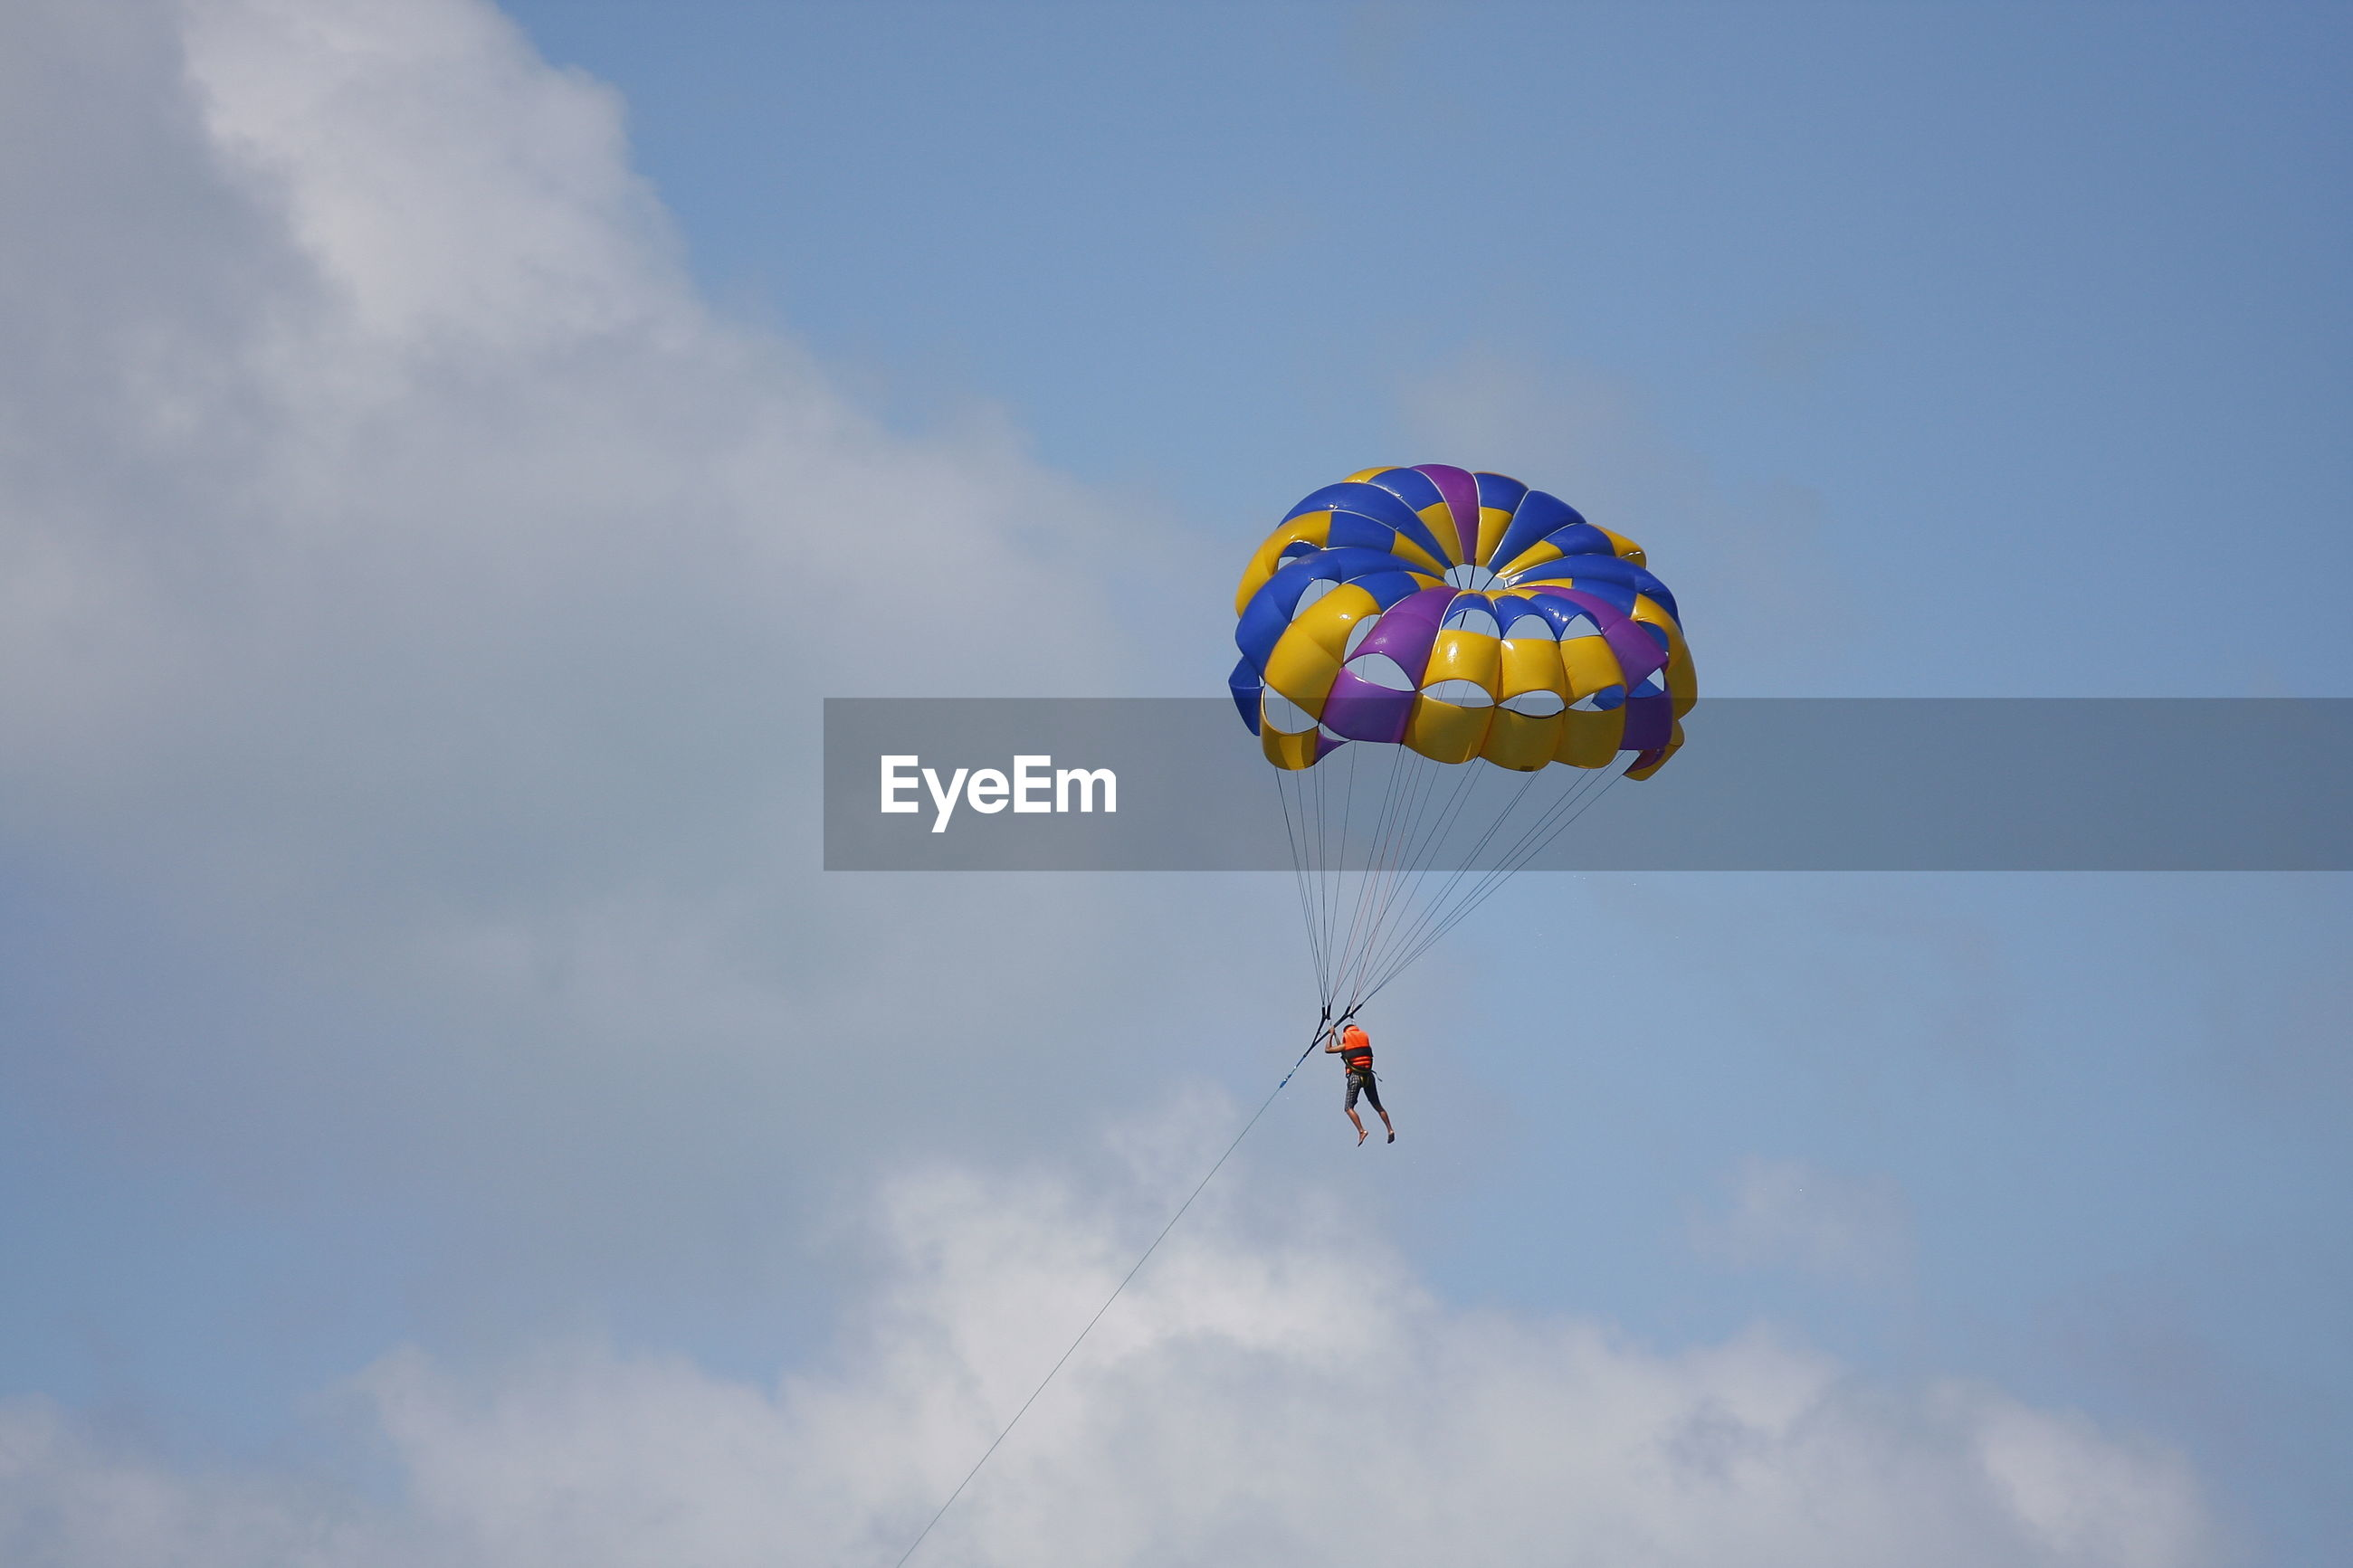 Low angle view of person skydiving with parachute against sky